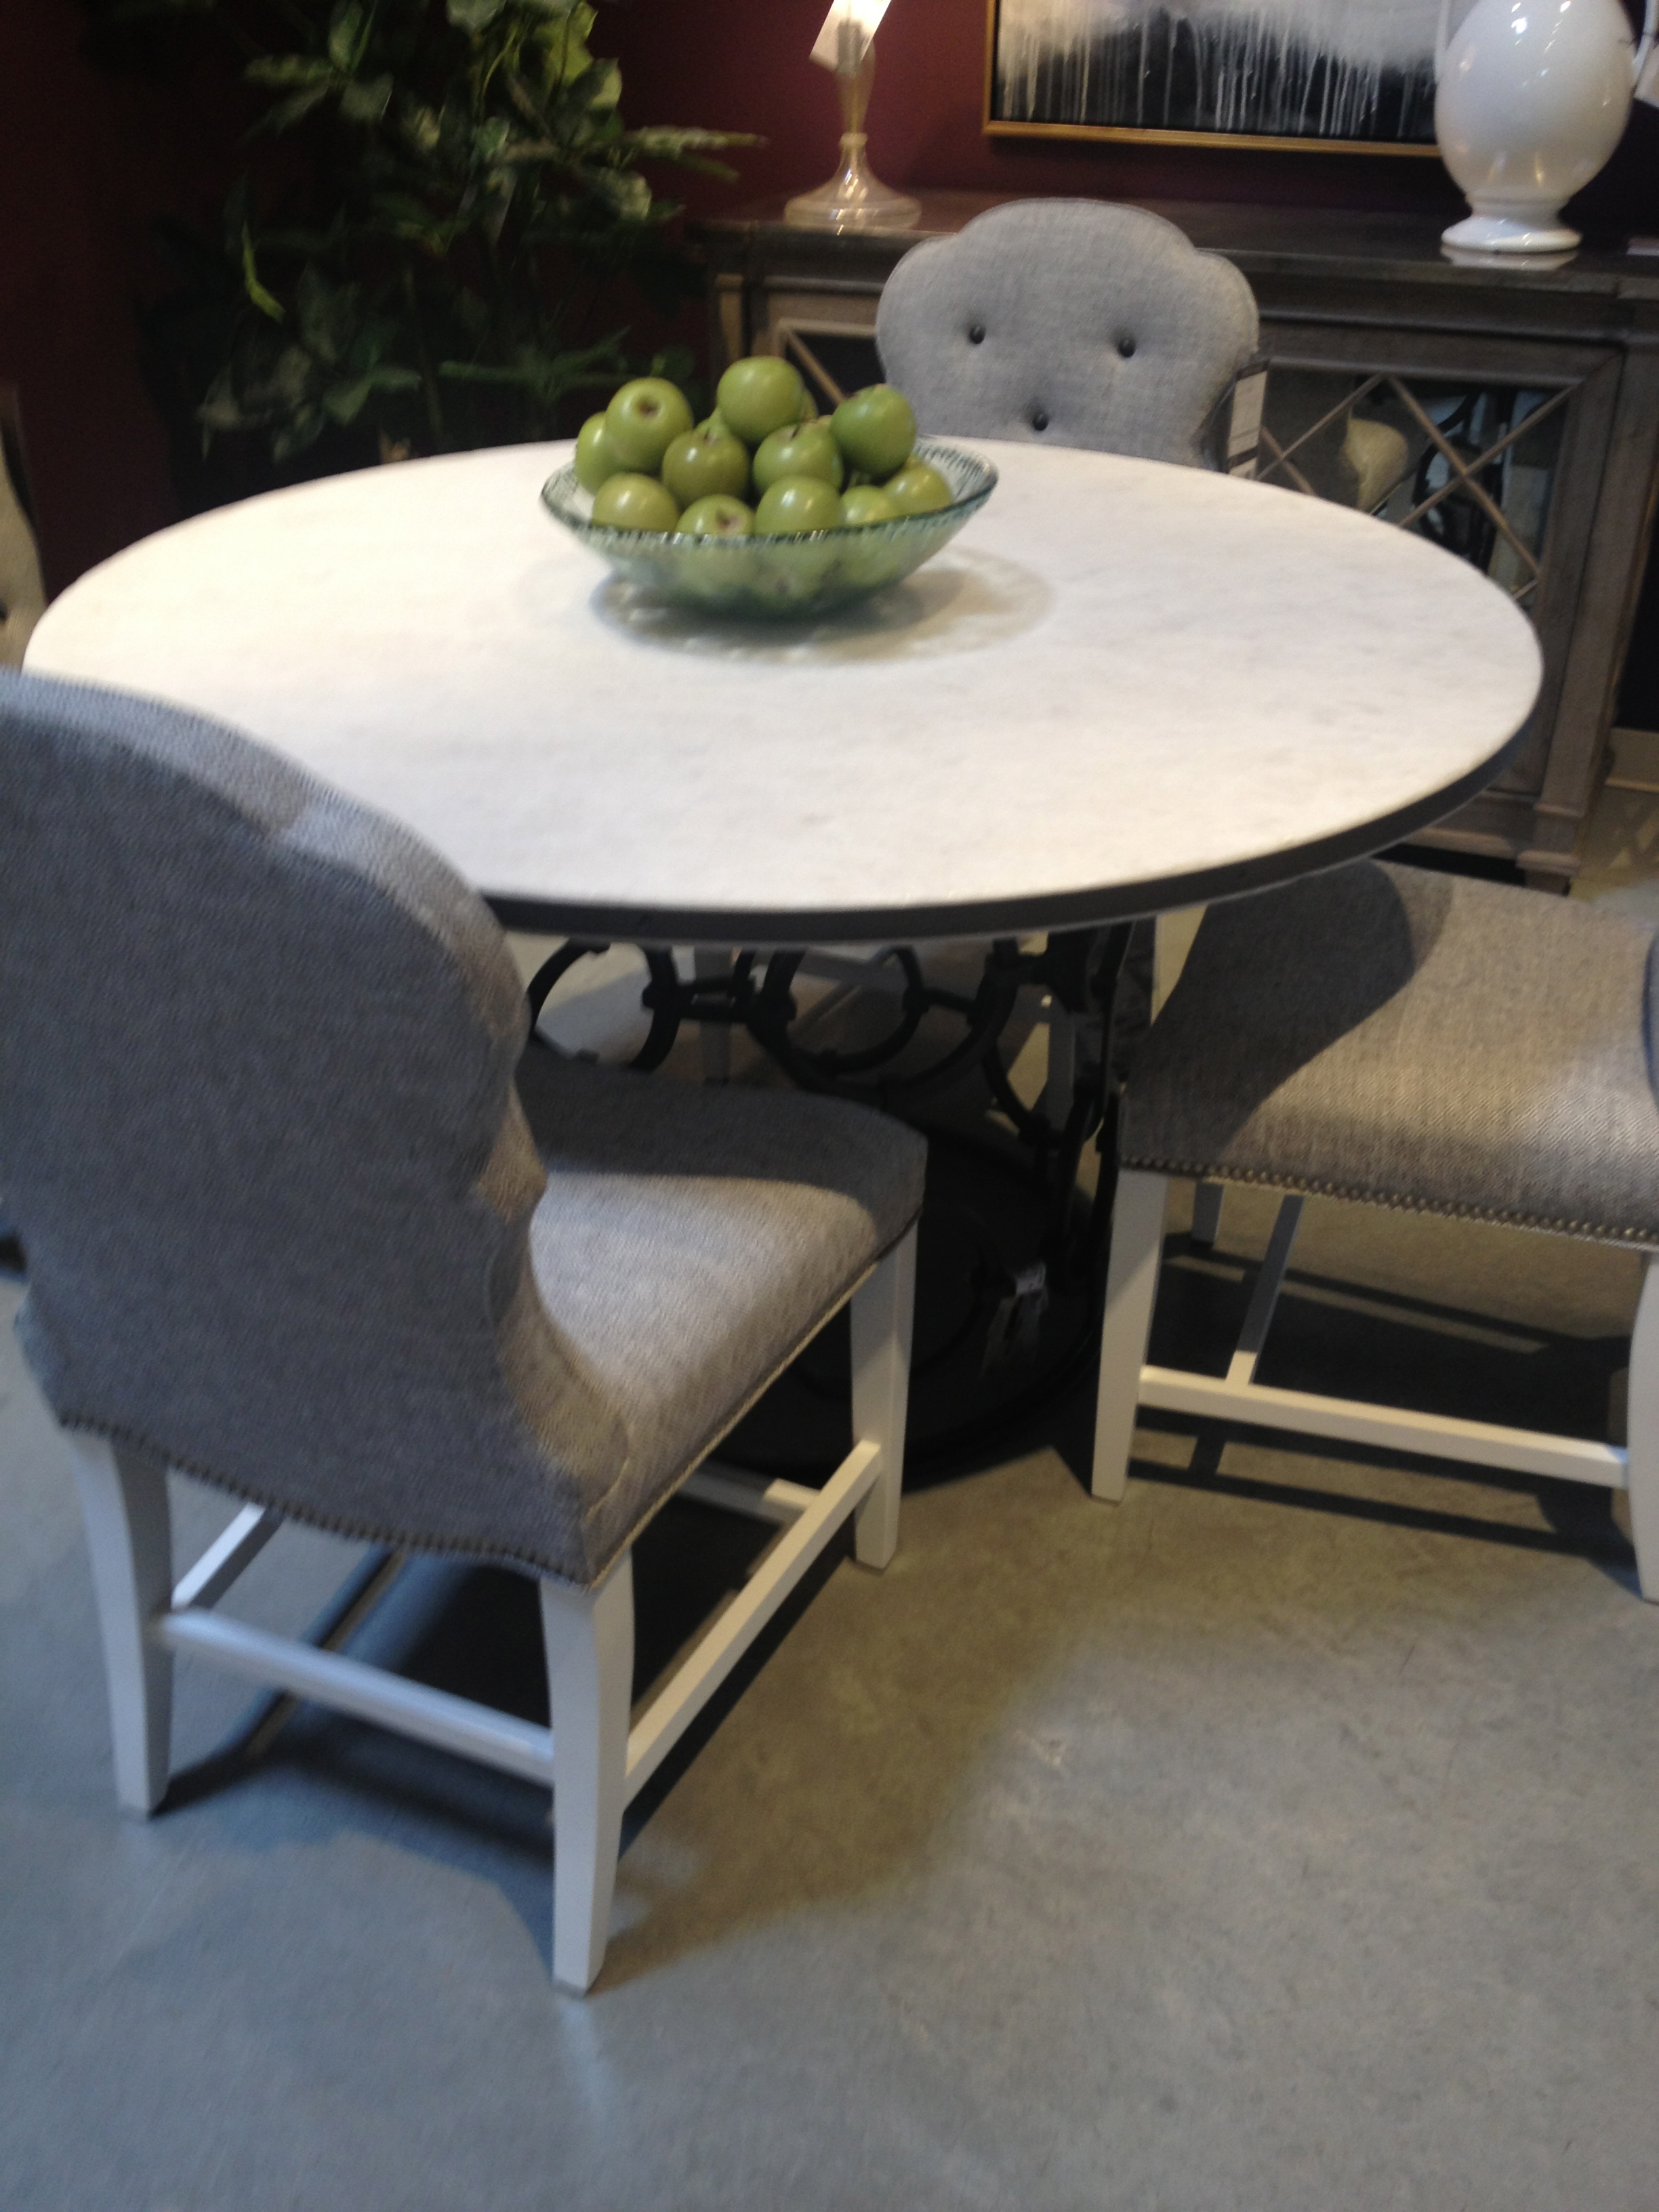 KDR displays this dining room table with an awesome stone tabletop.